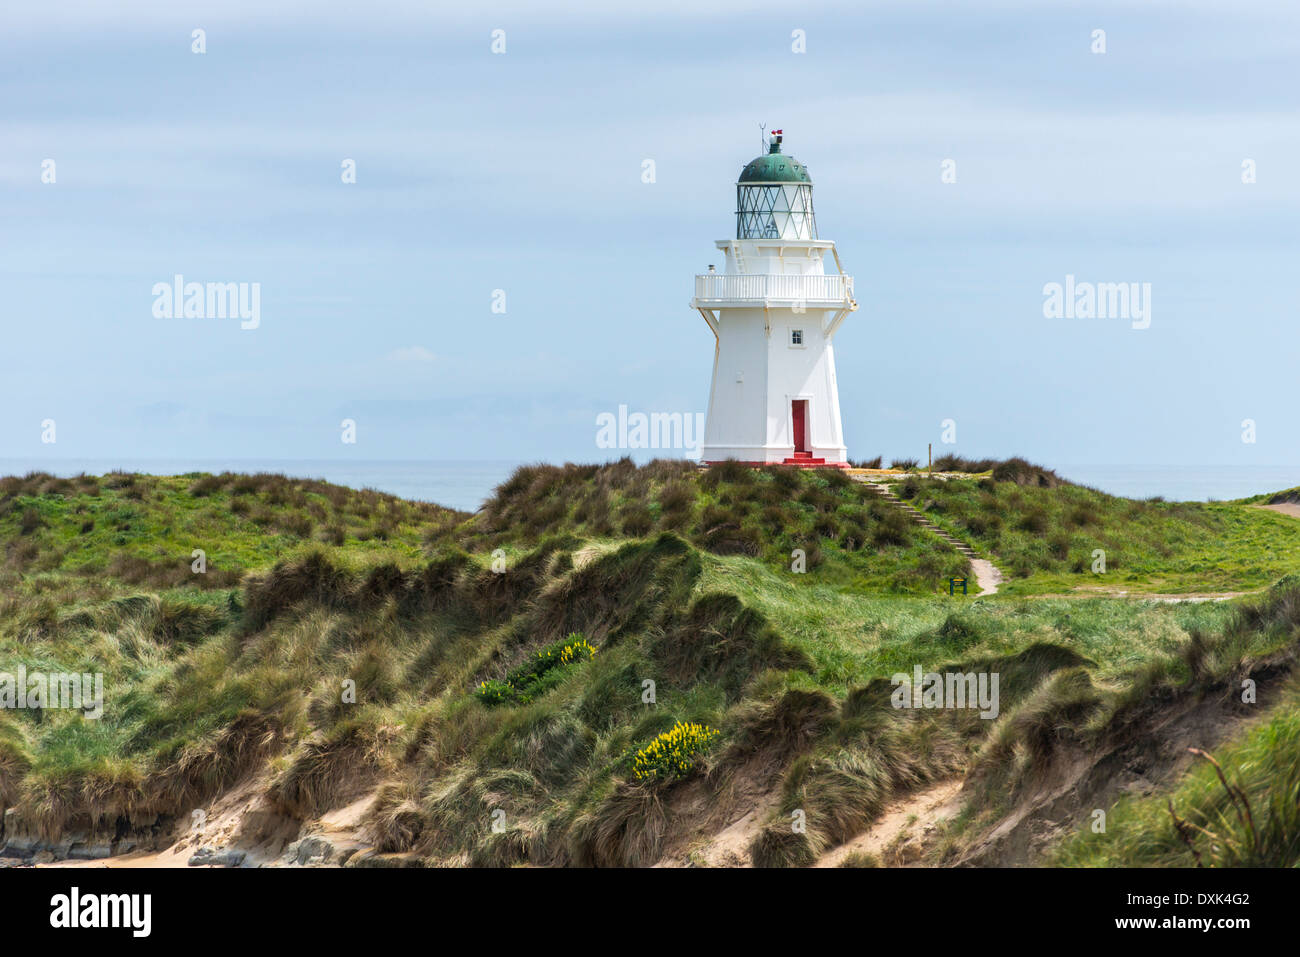 Lighthouse, Waikawa Point, New Zealand - Stock Image